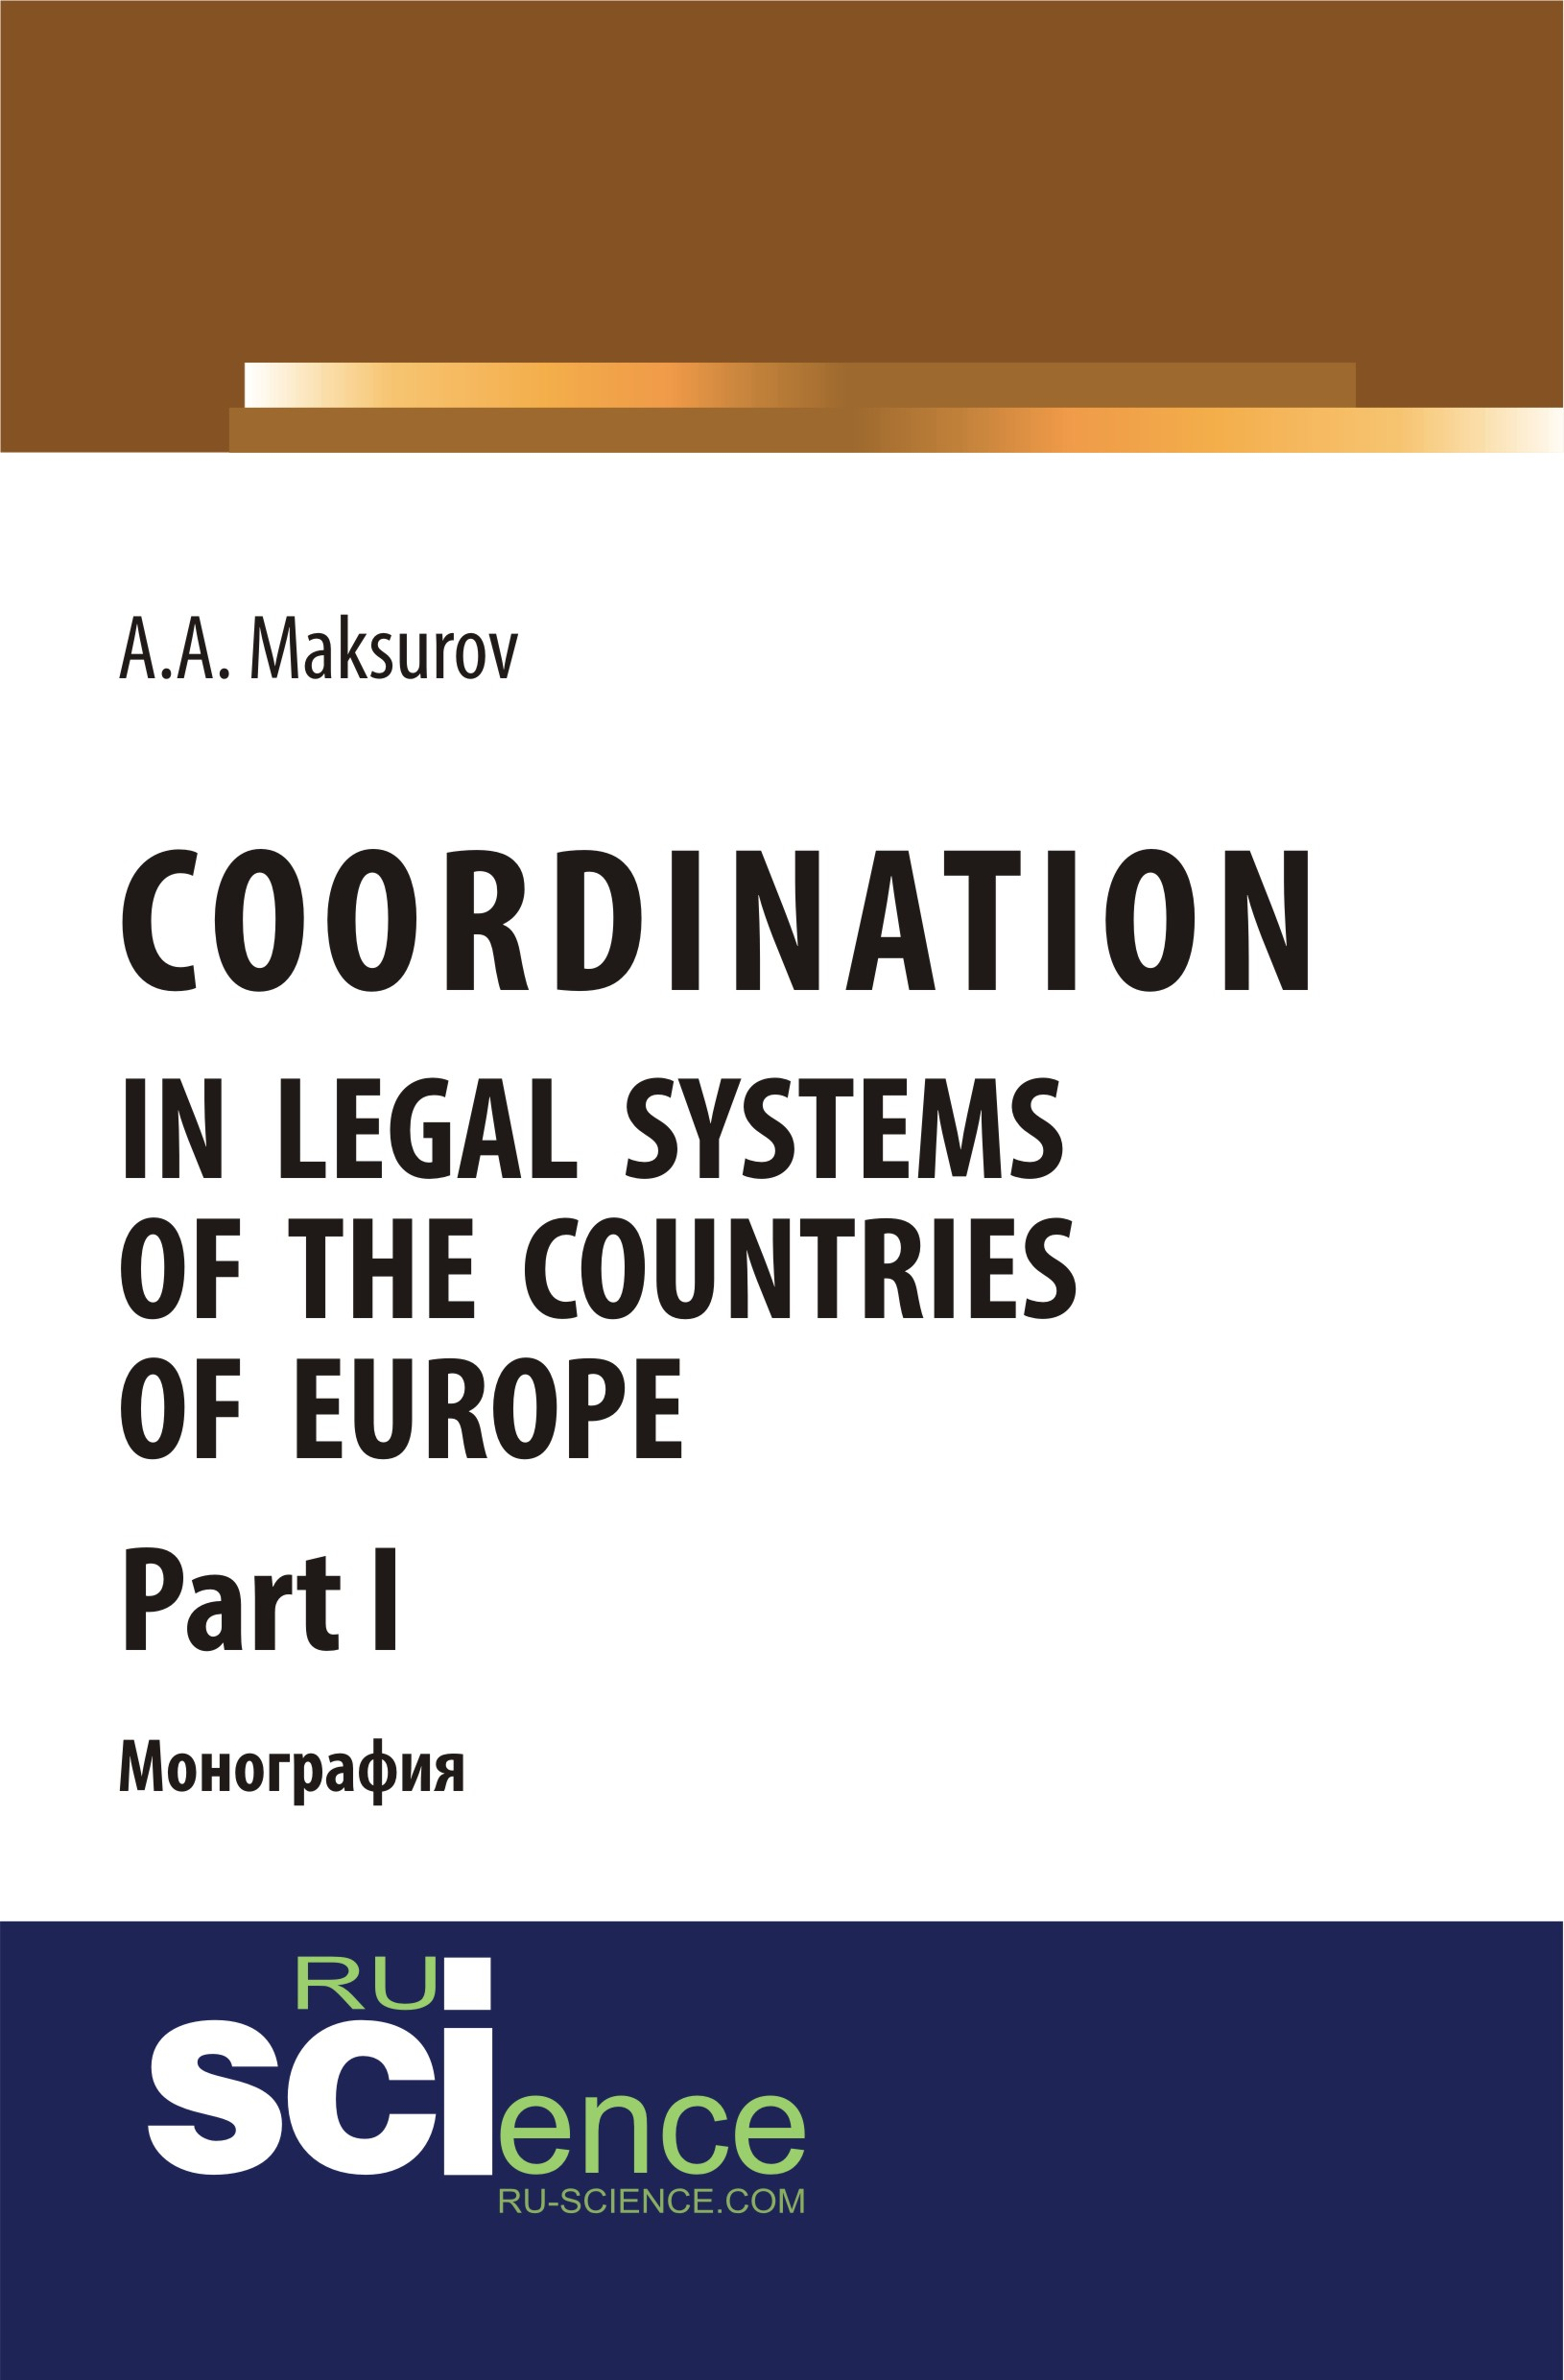 А. А. Максуров Coordination in legal systems of the countries of Europe. Part I a republic of law